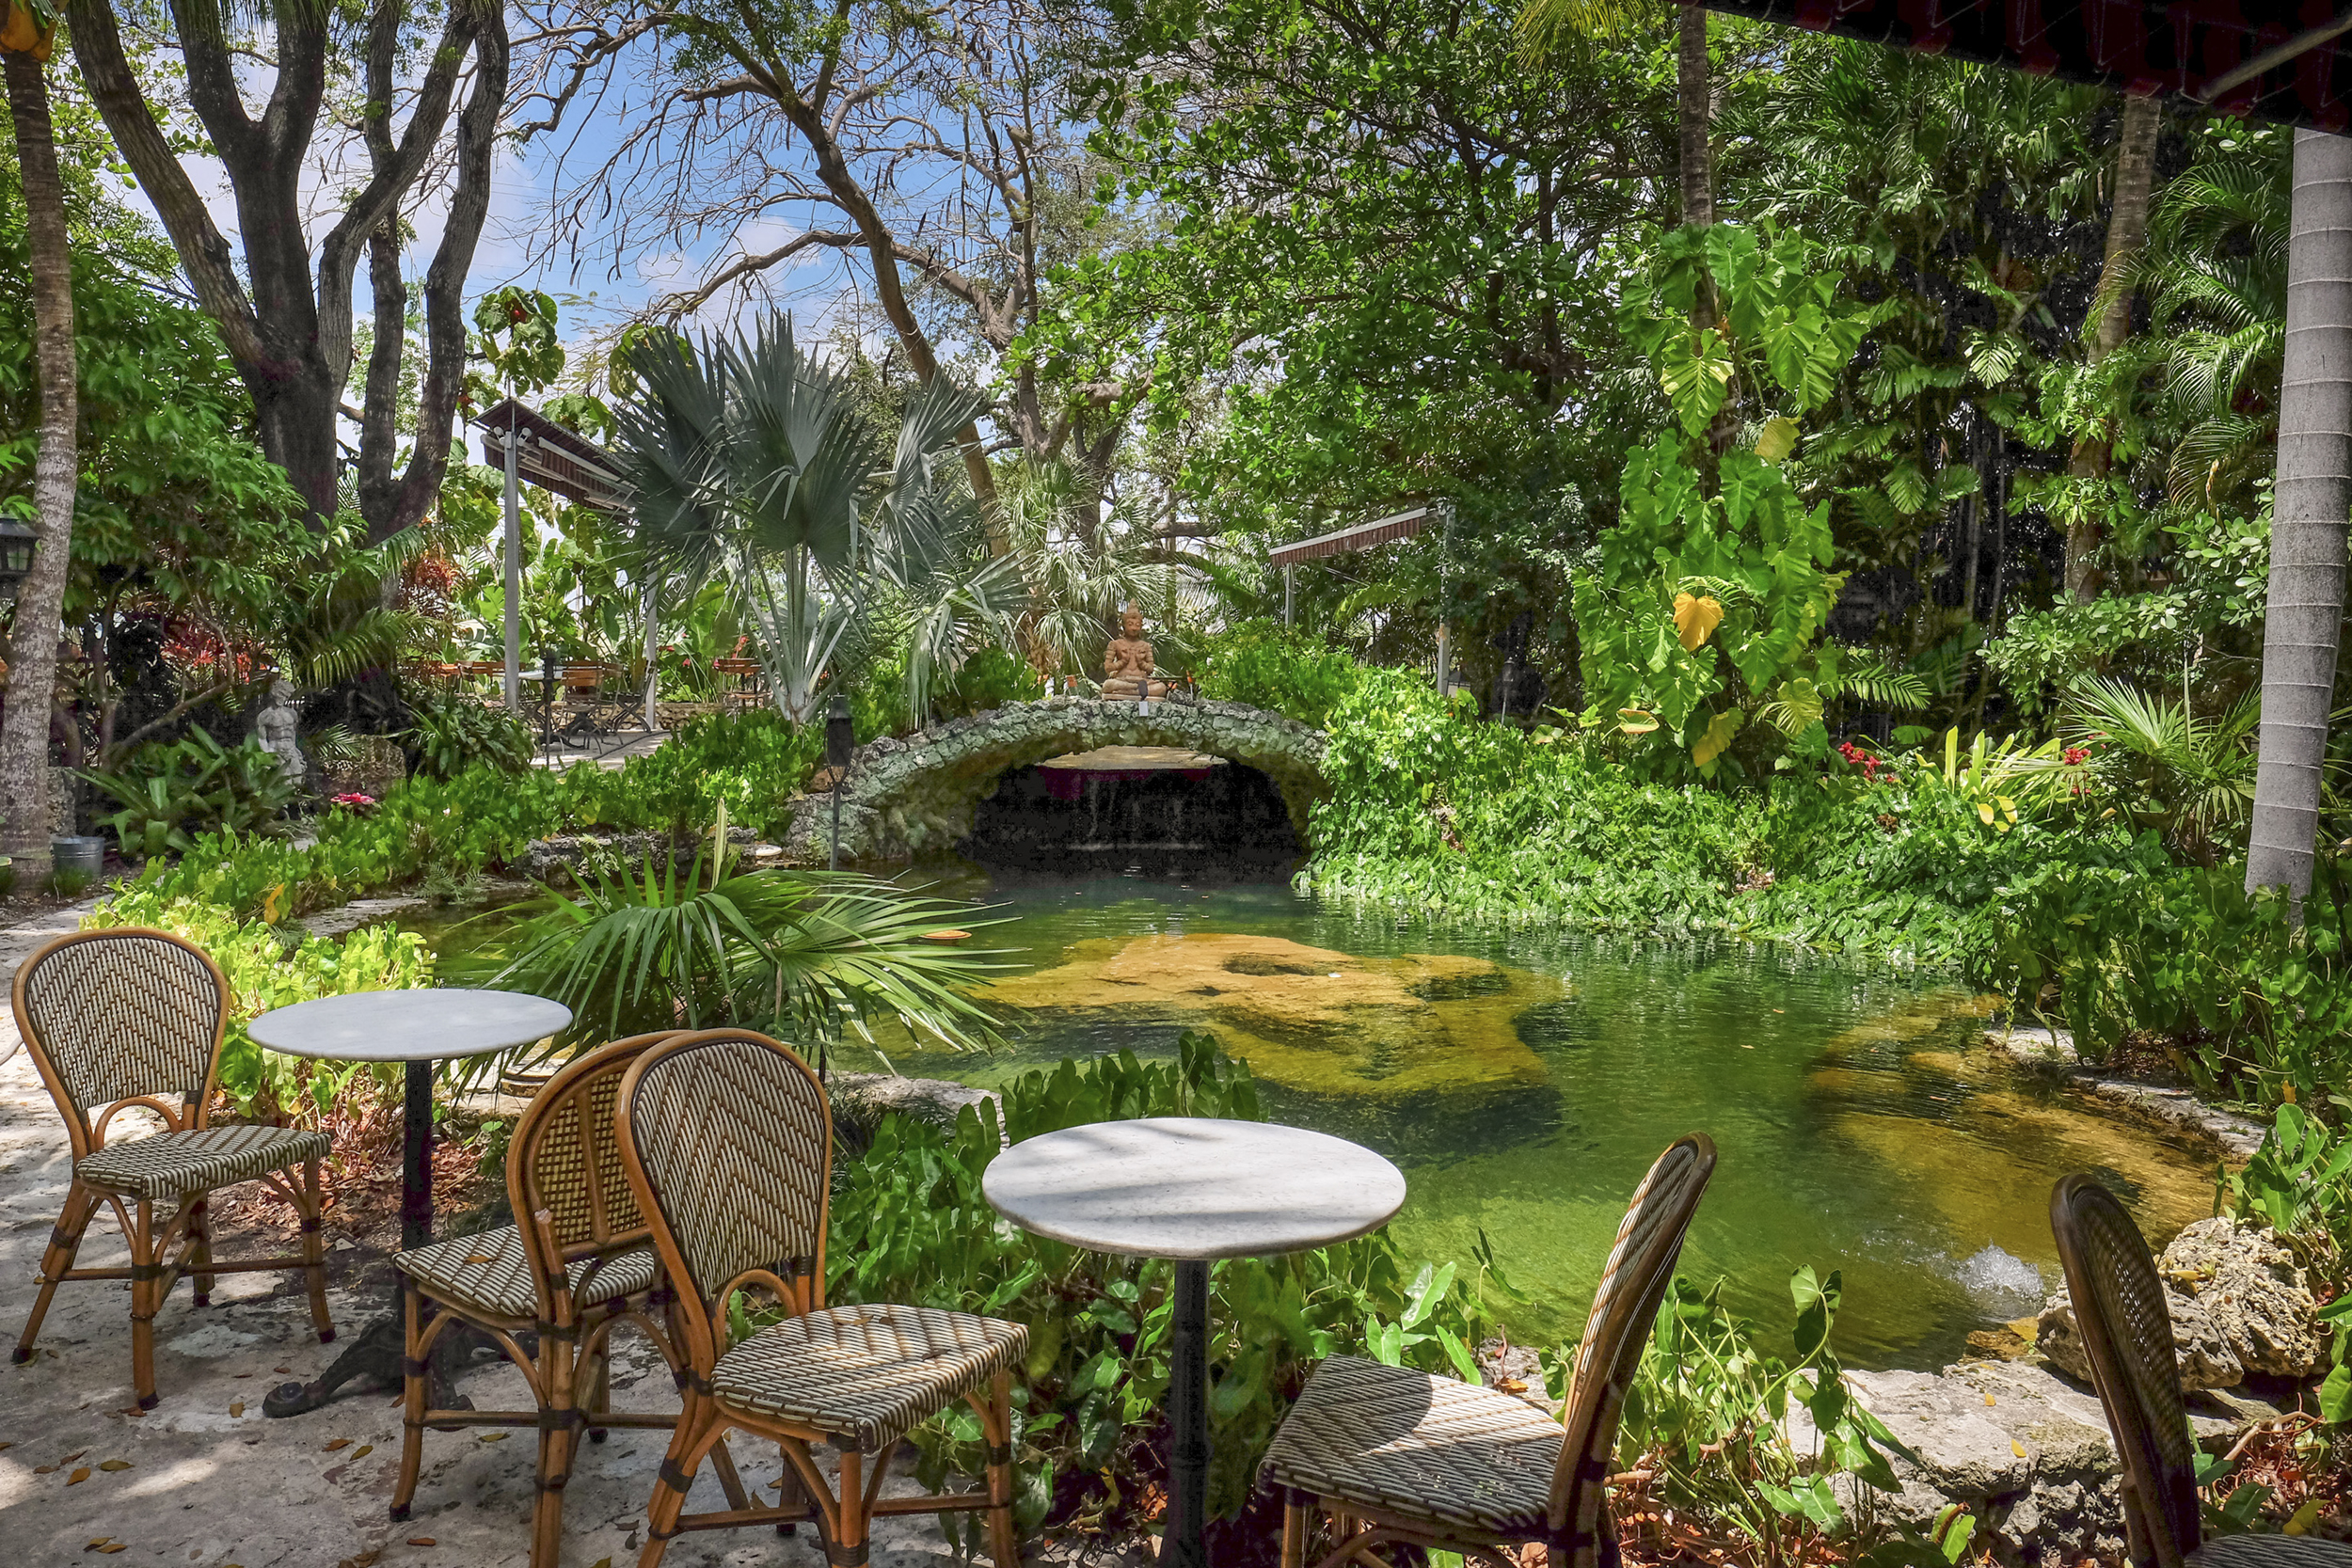 inspirational where to dine al fresco in miami